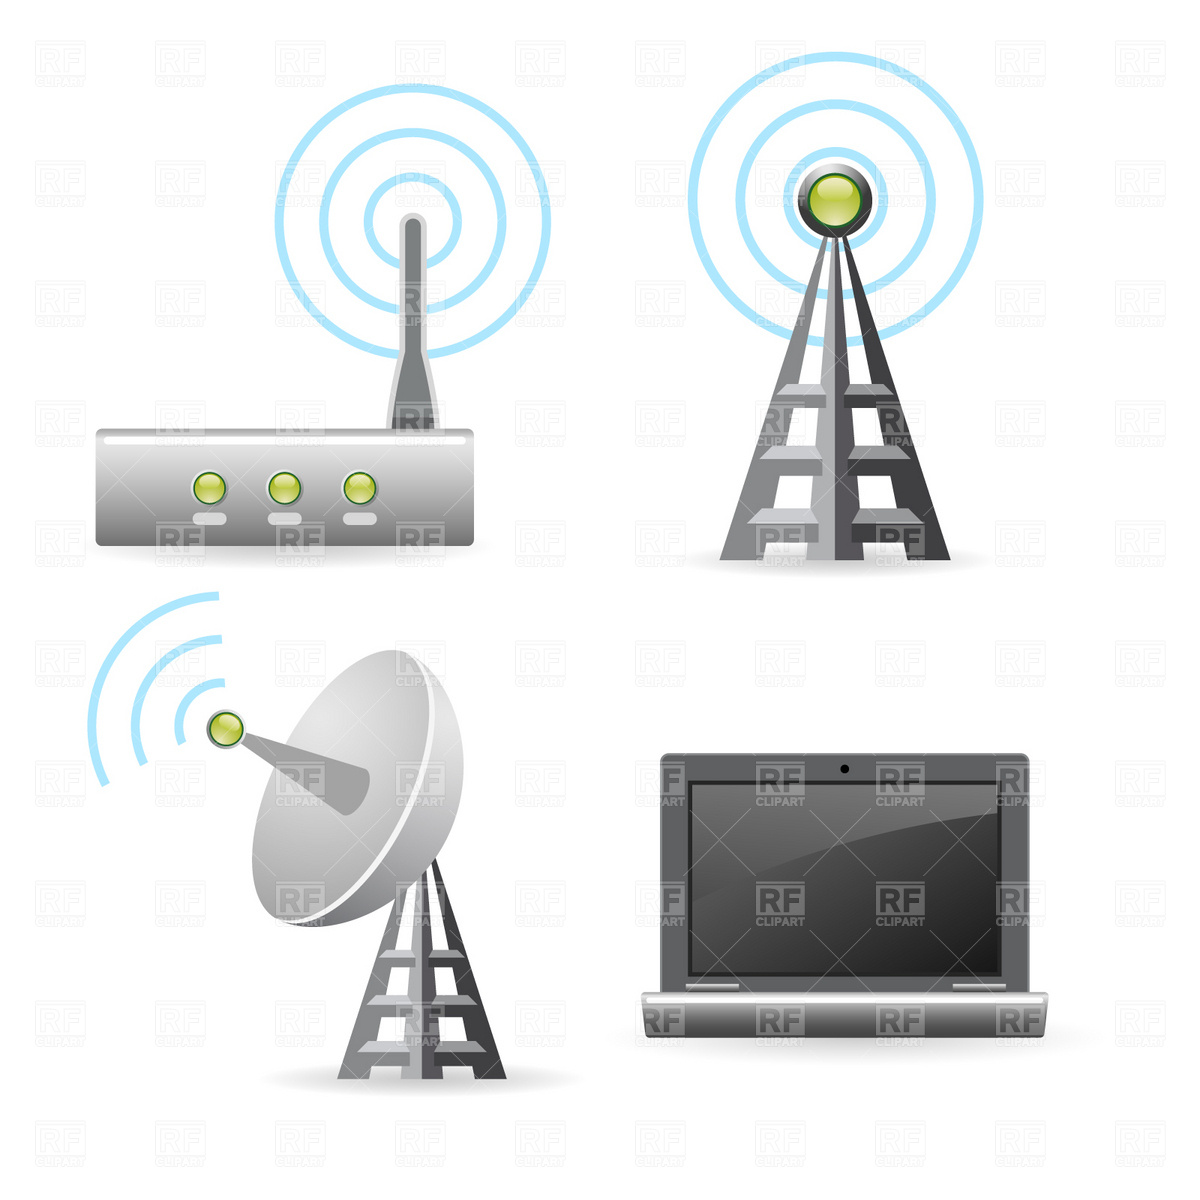 Wireless Technology Icons 1854 Technology Download Royalty Free